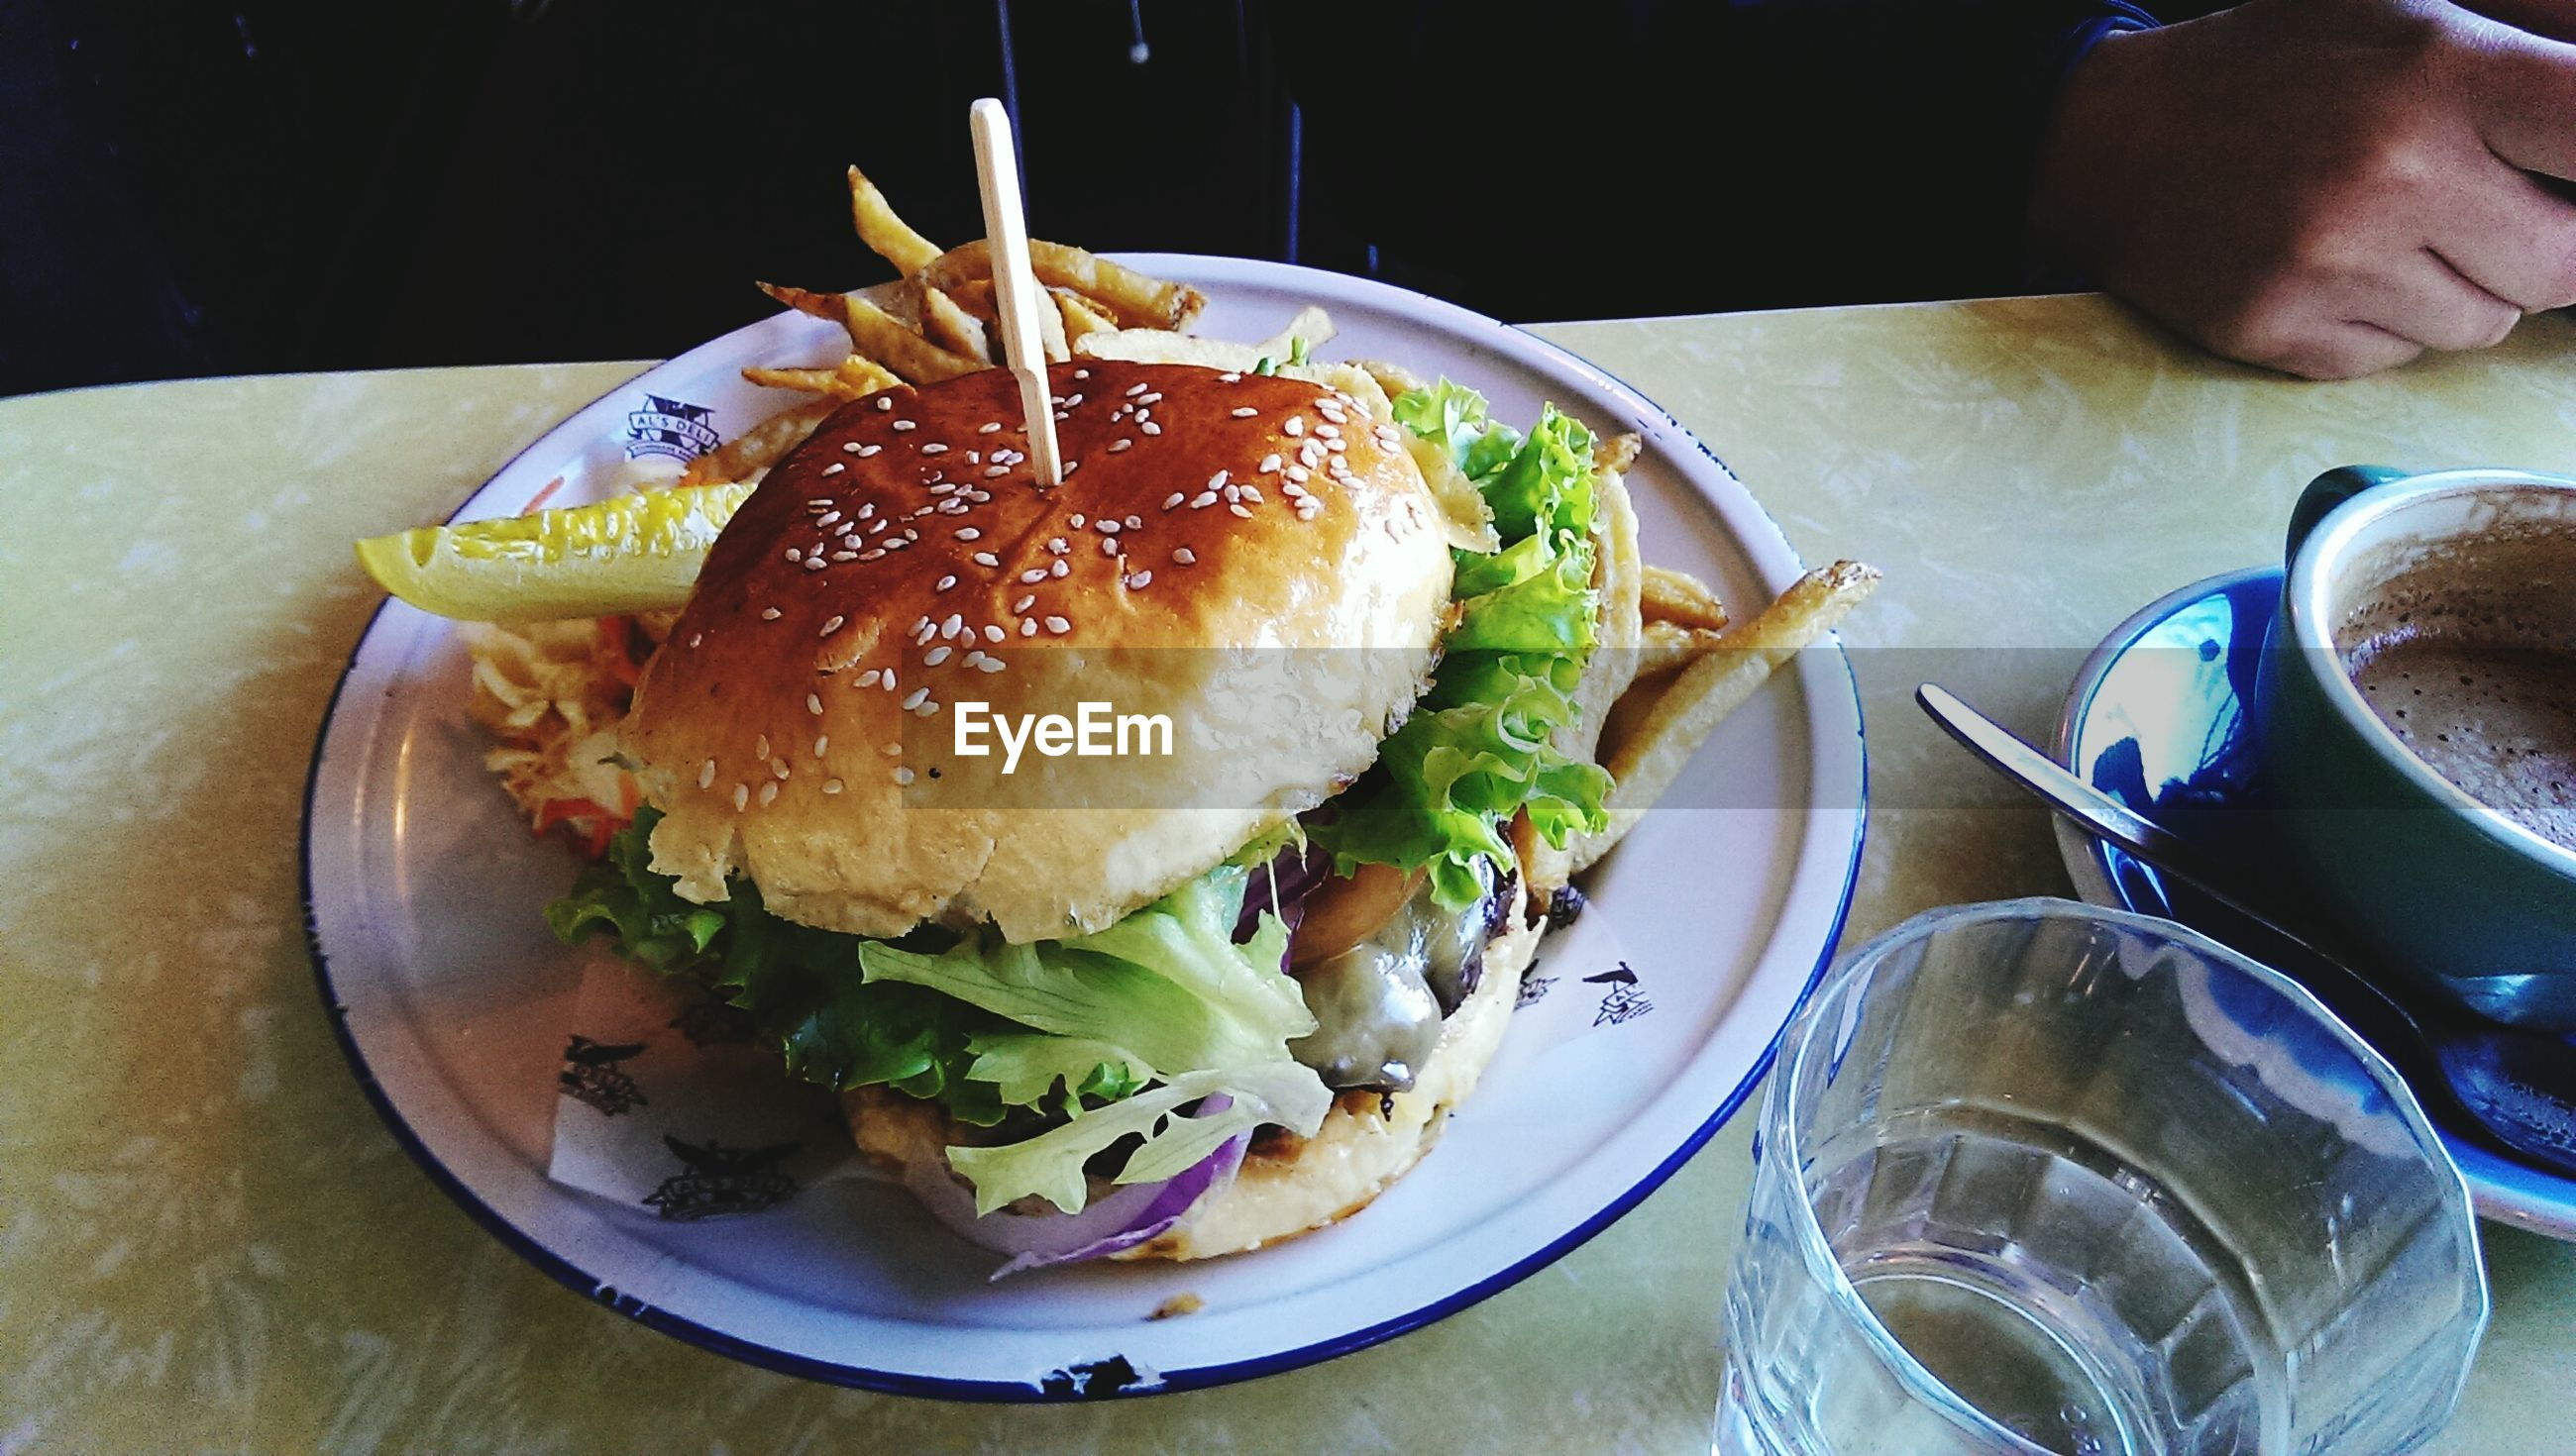 High angle view of burger served in plate on table